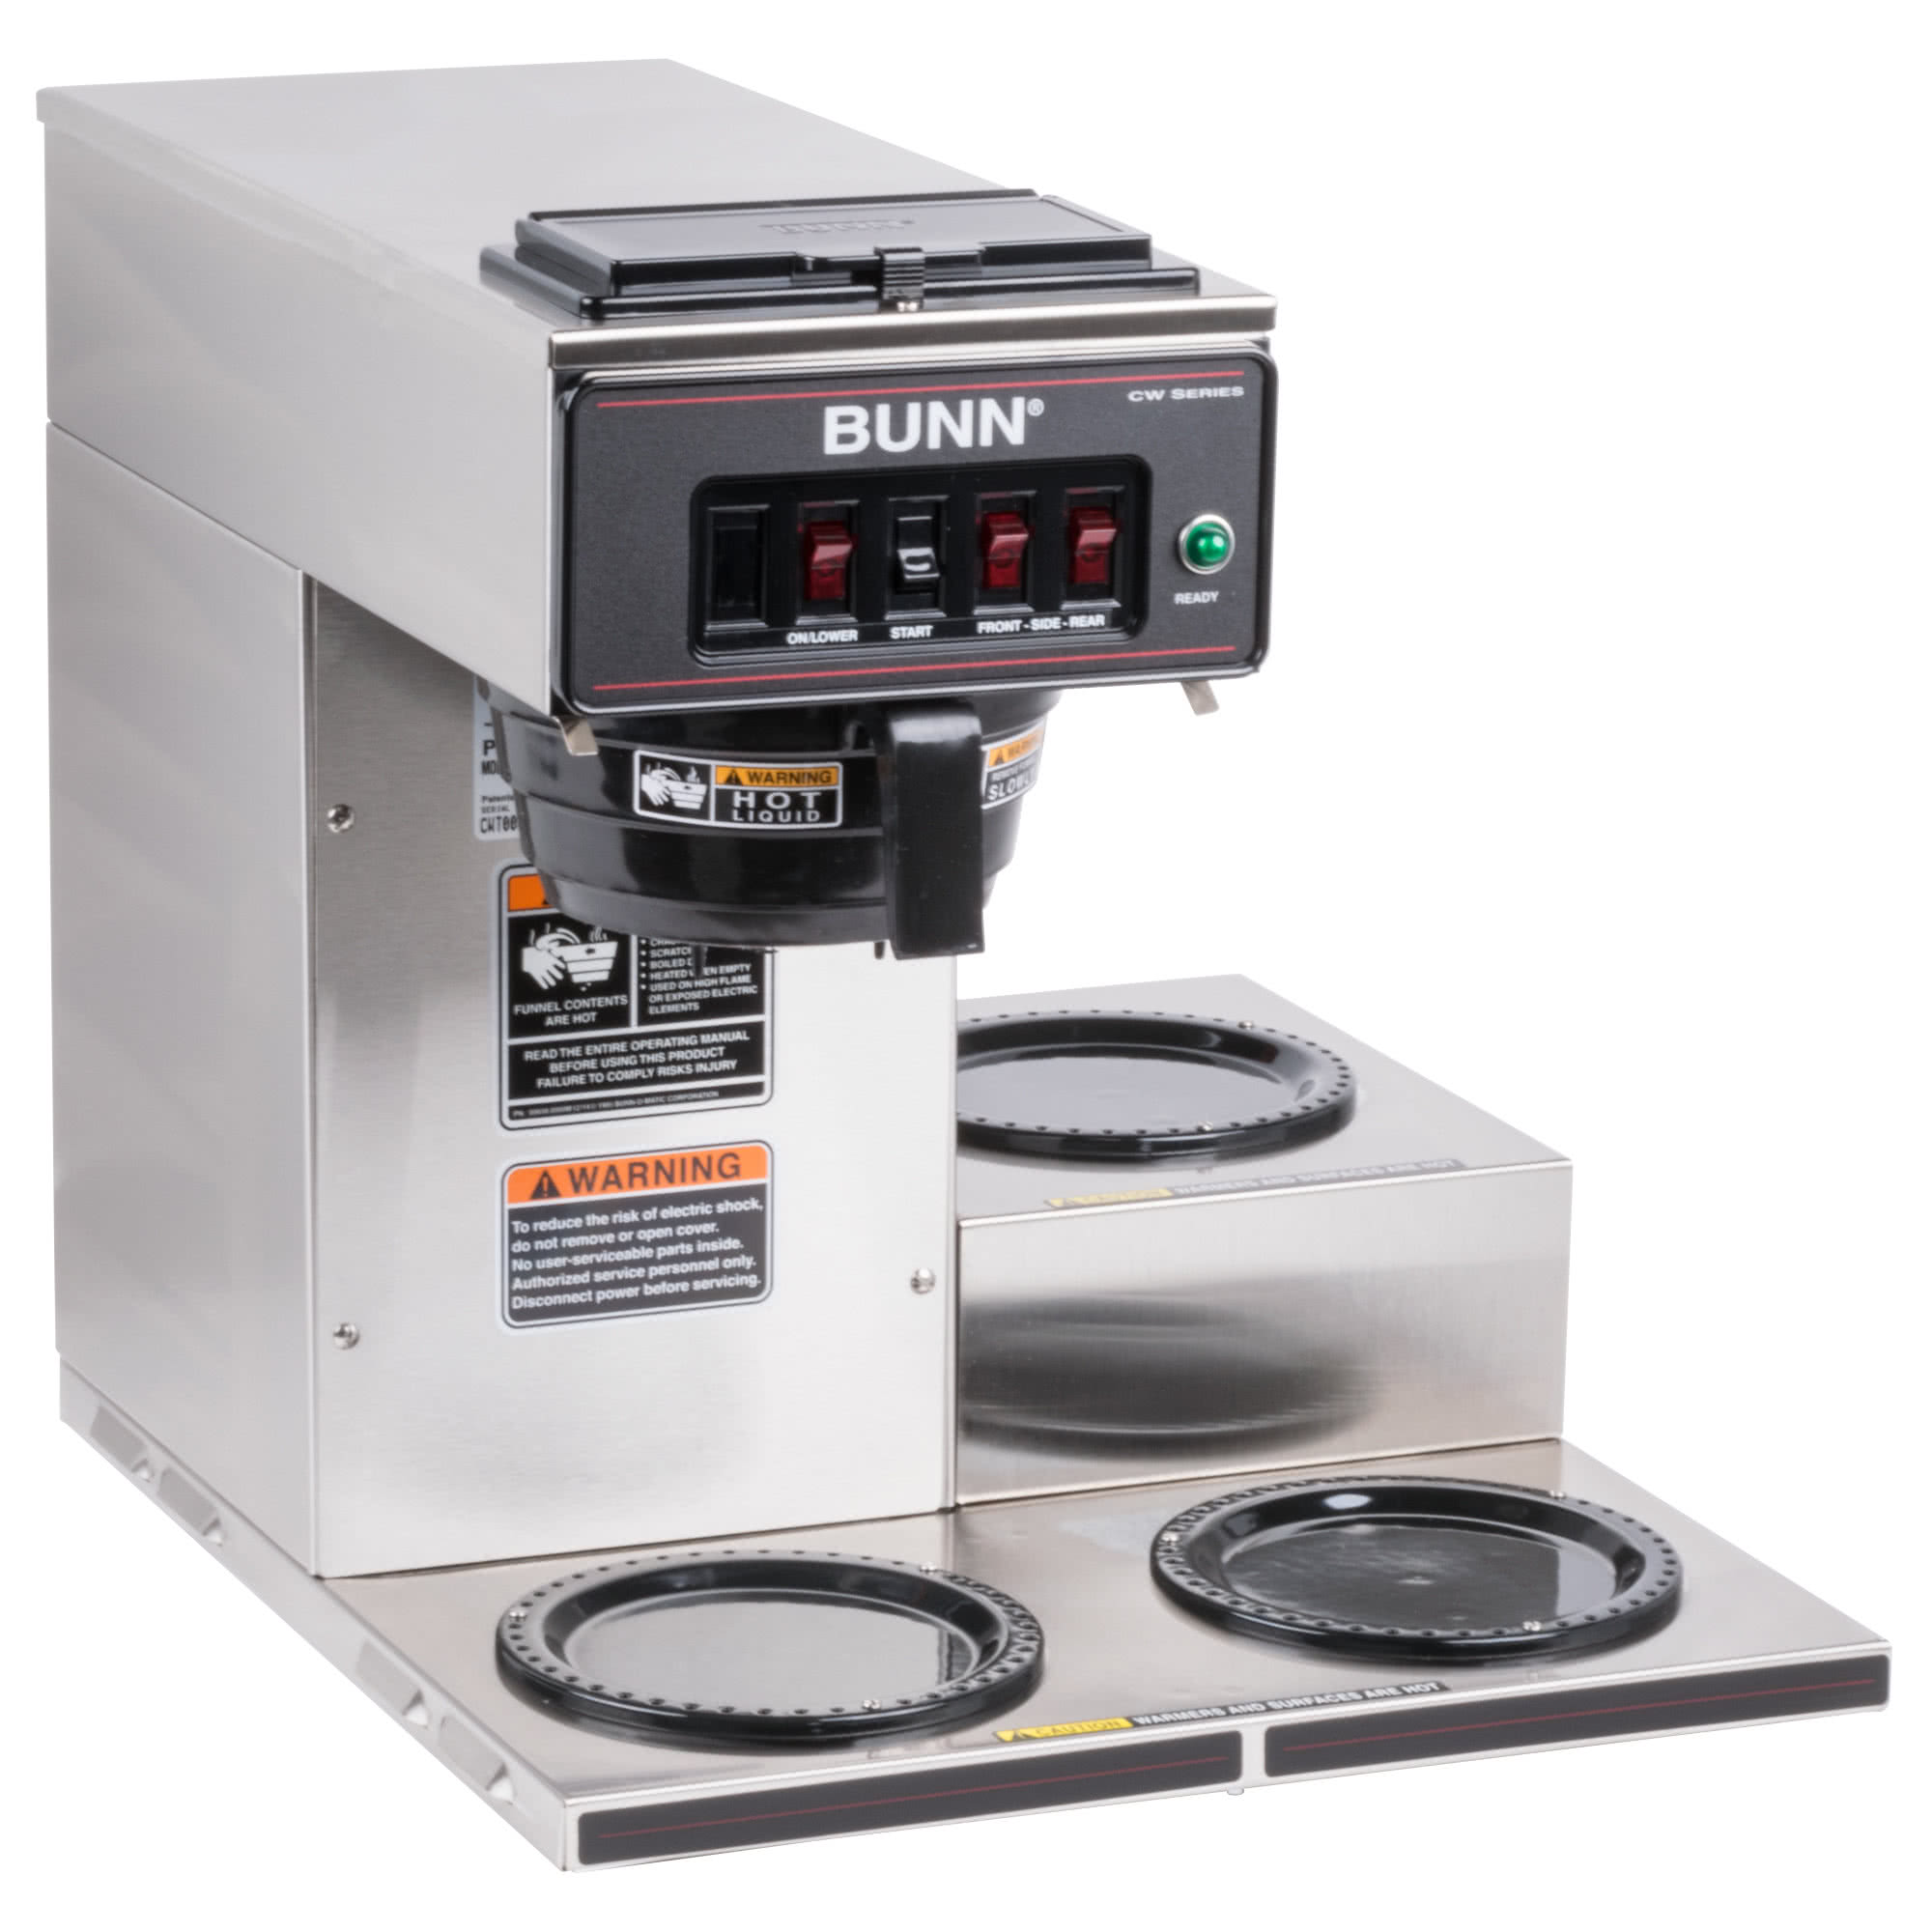 Bunn Coffee Grinder Parts Cw Wiring Diagram Cup Automatic Brewer With Lower Warmers Refurbished 2000x2000